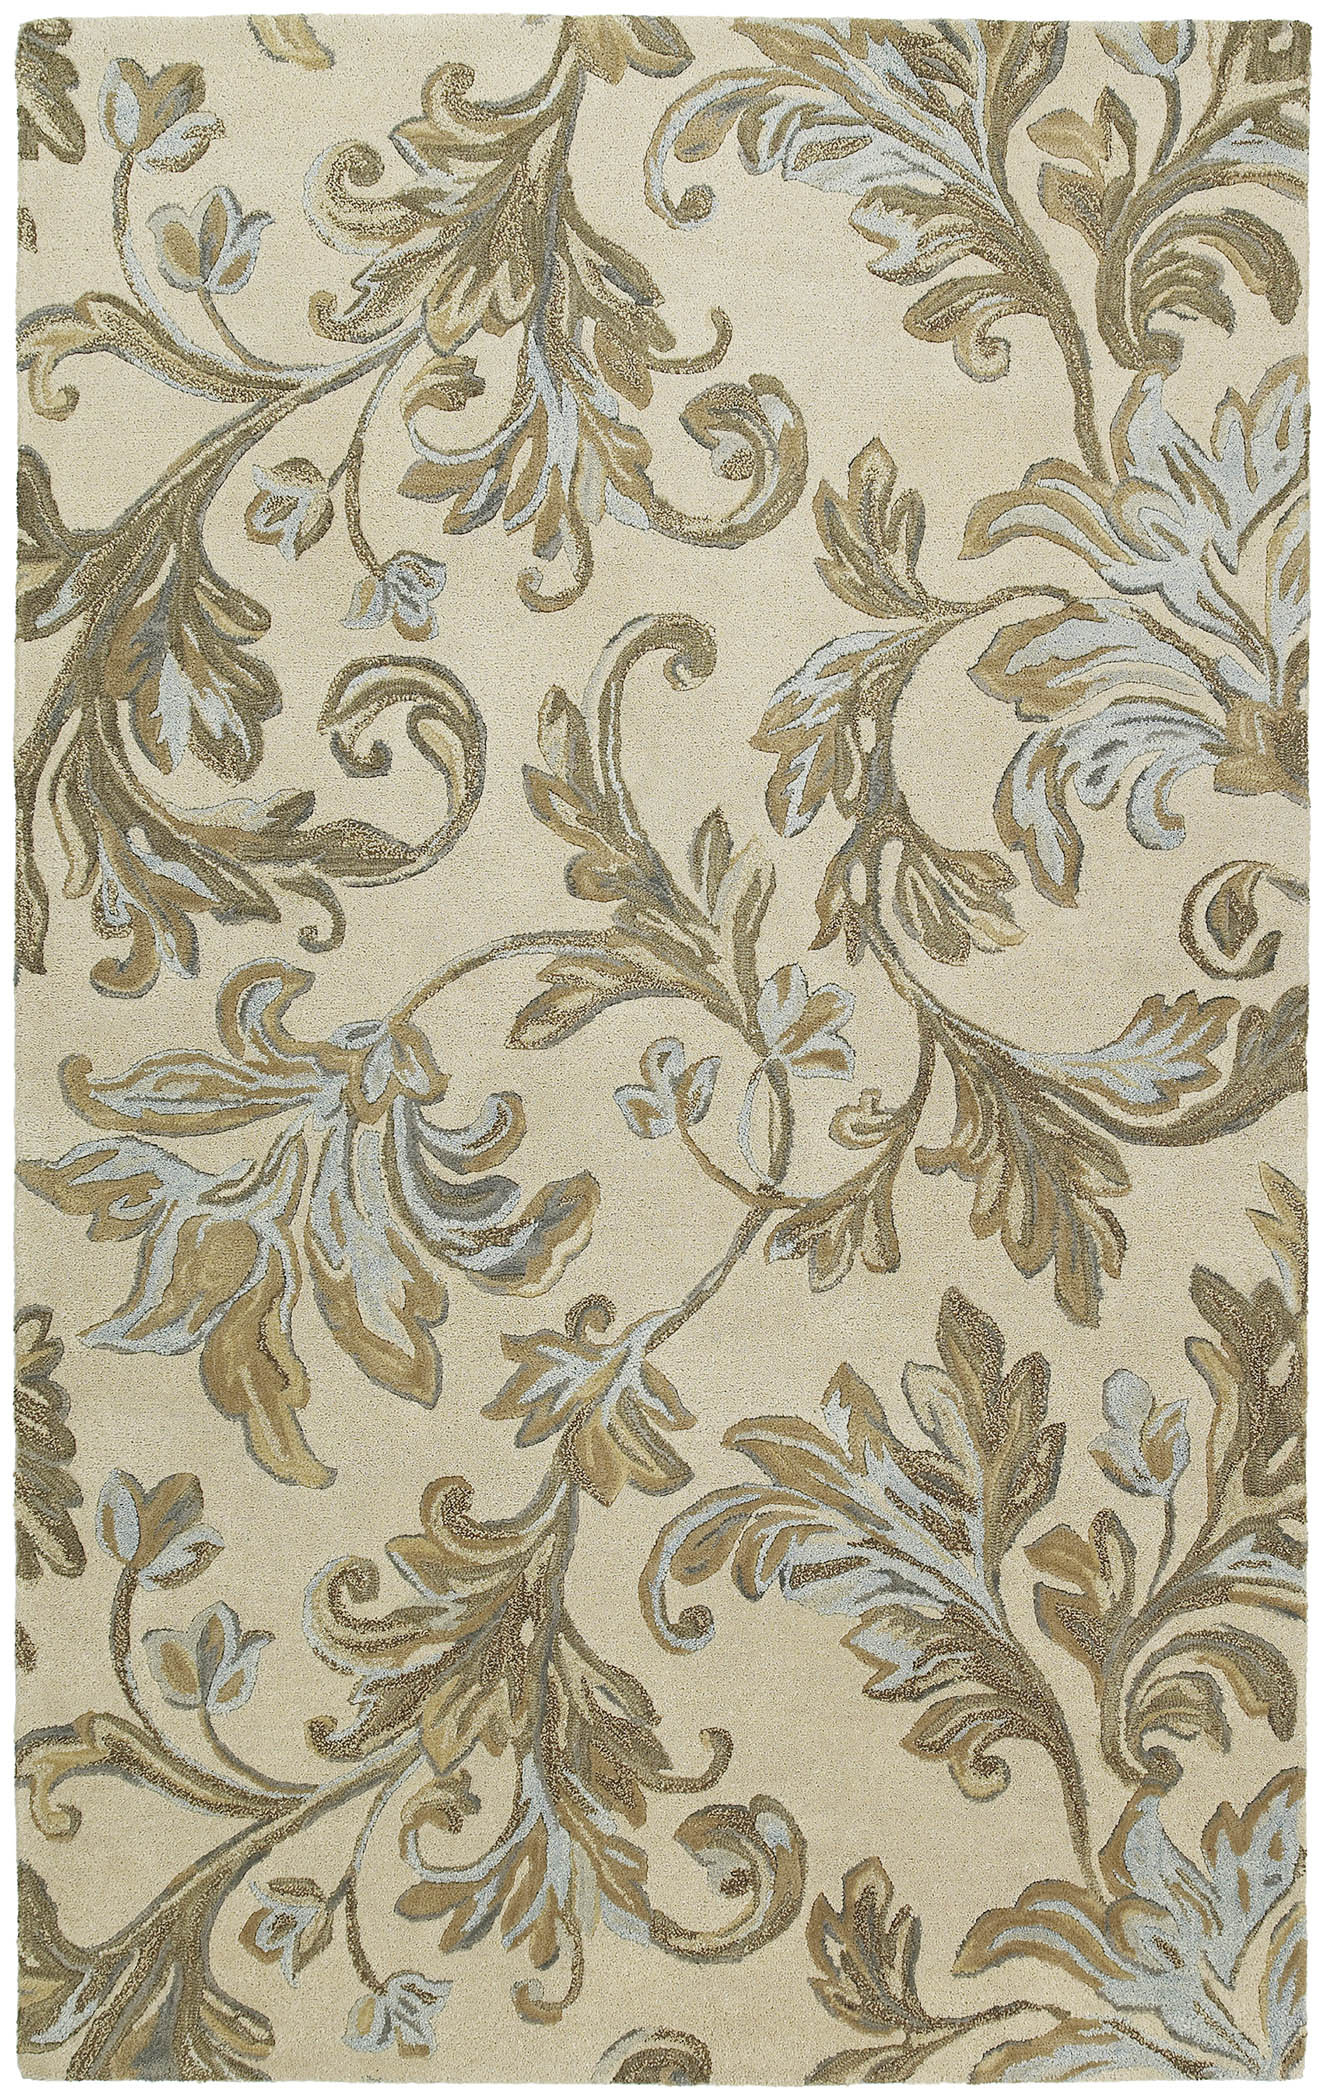 Calais 7507 Floral Waterfall Ivory 01 Rug by Kaleen